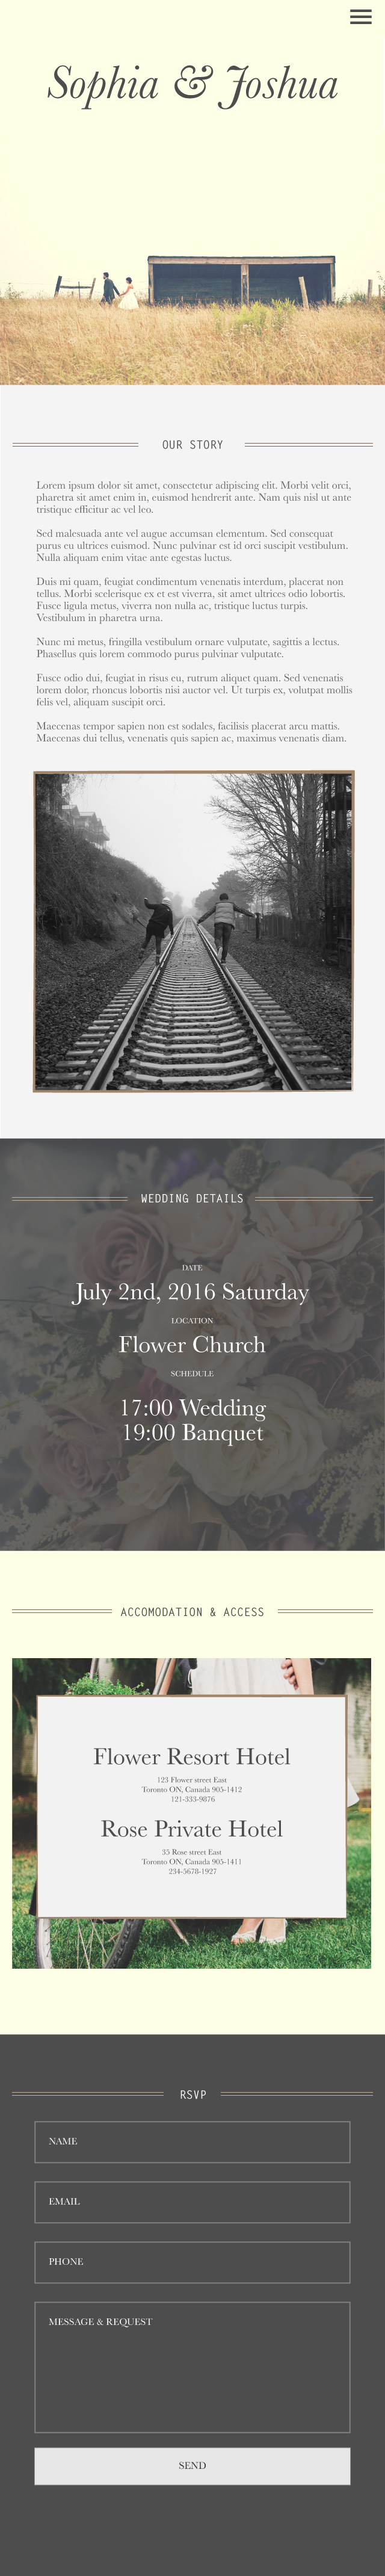 Wedding Invitation Mobile site prototype